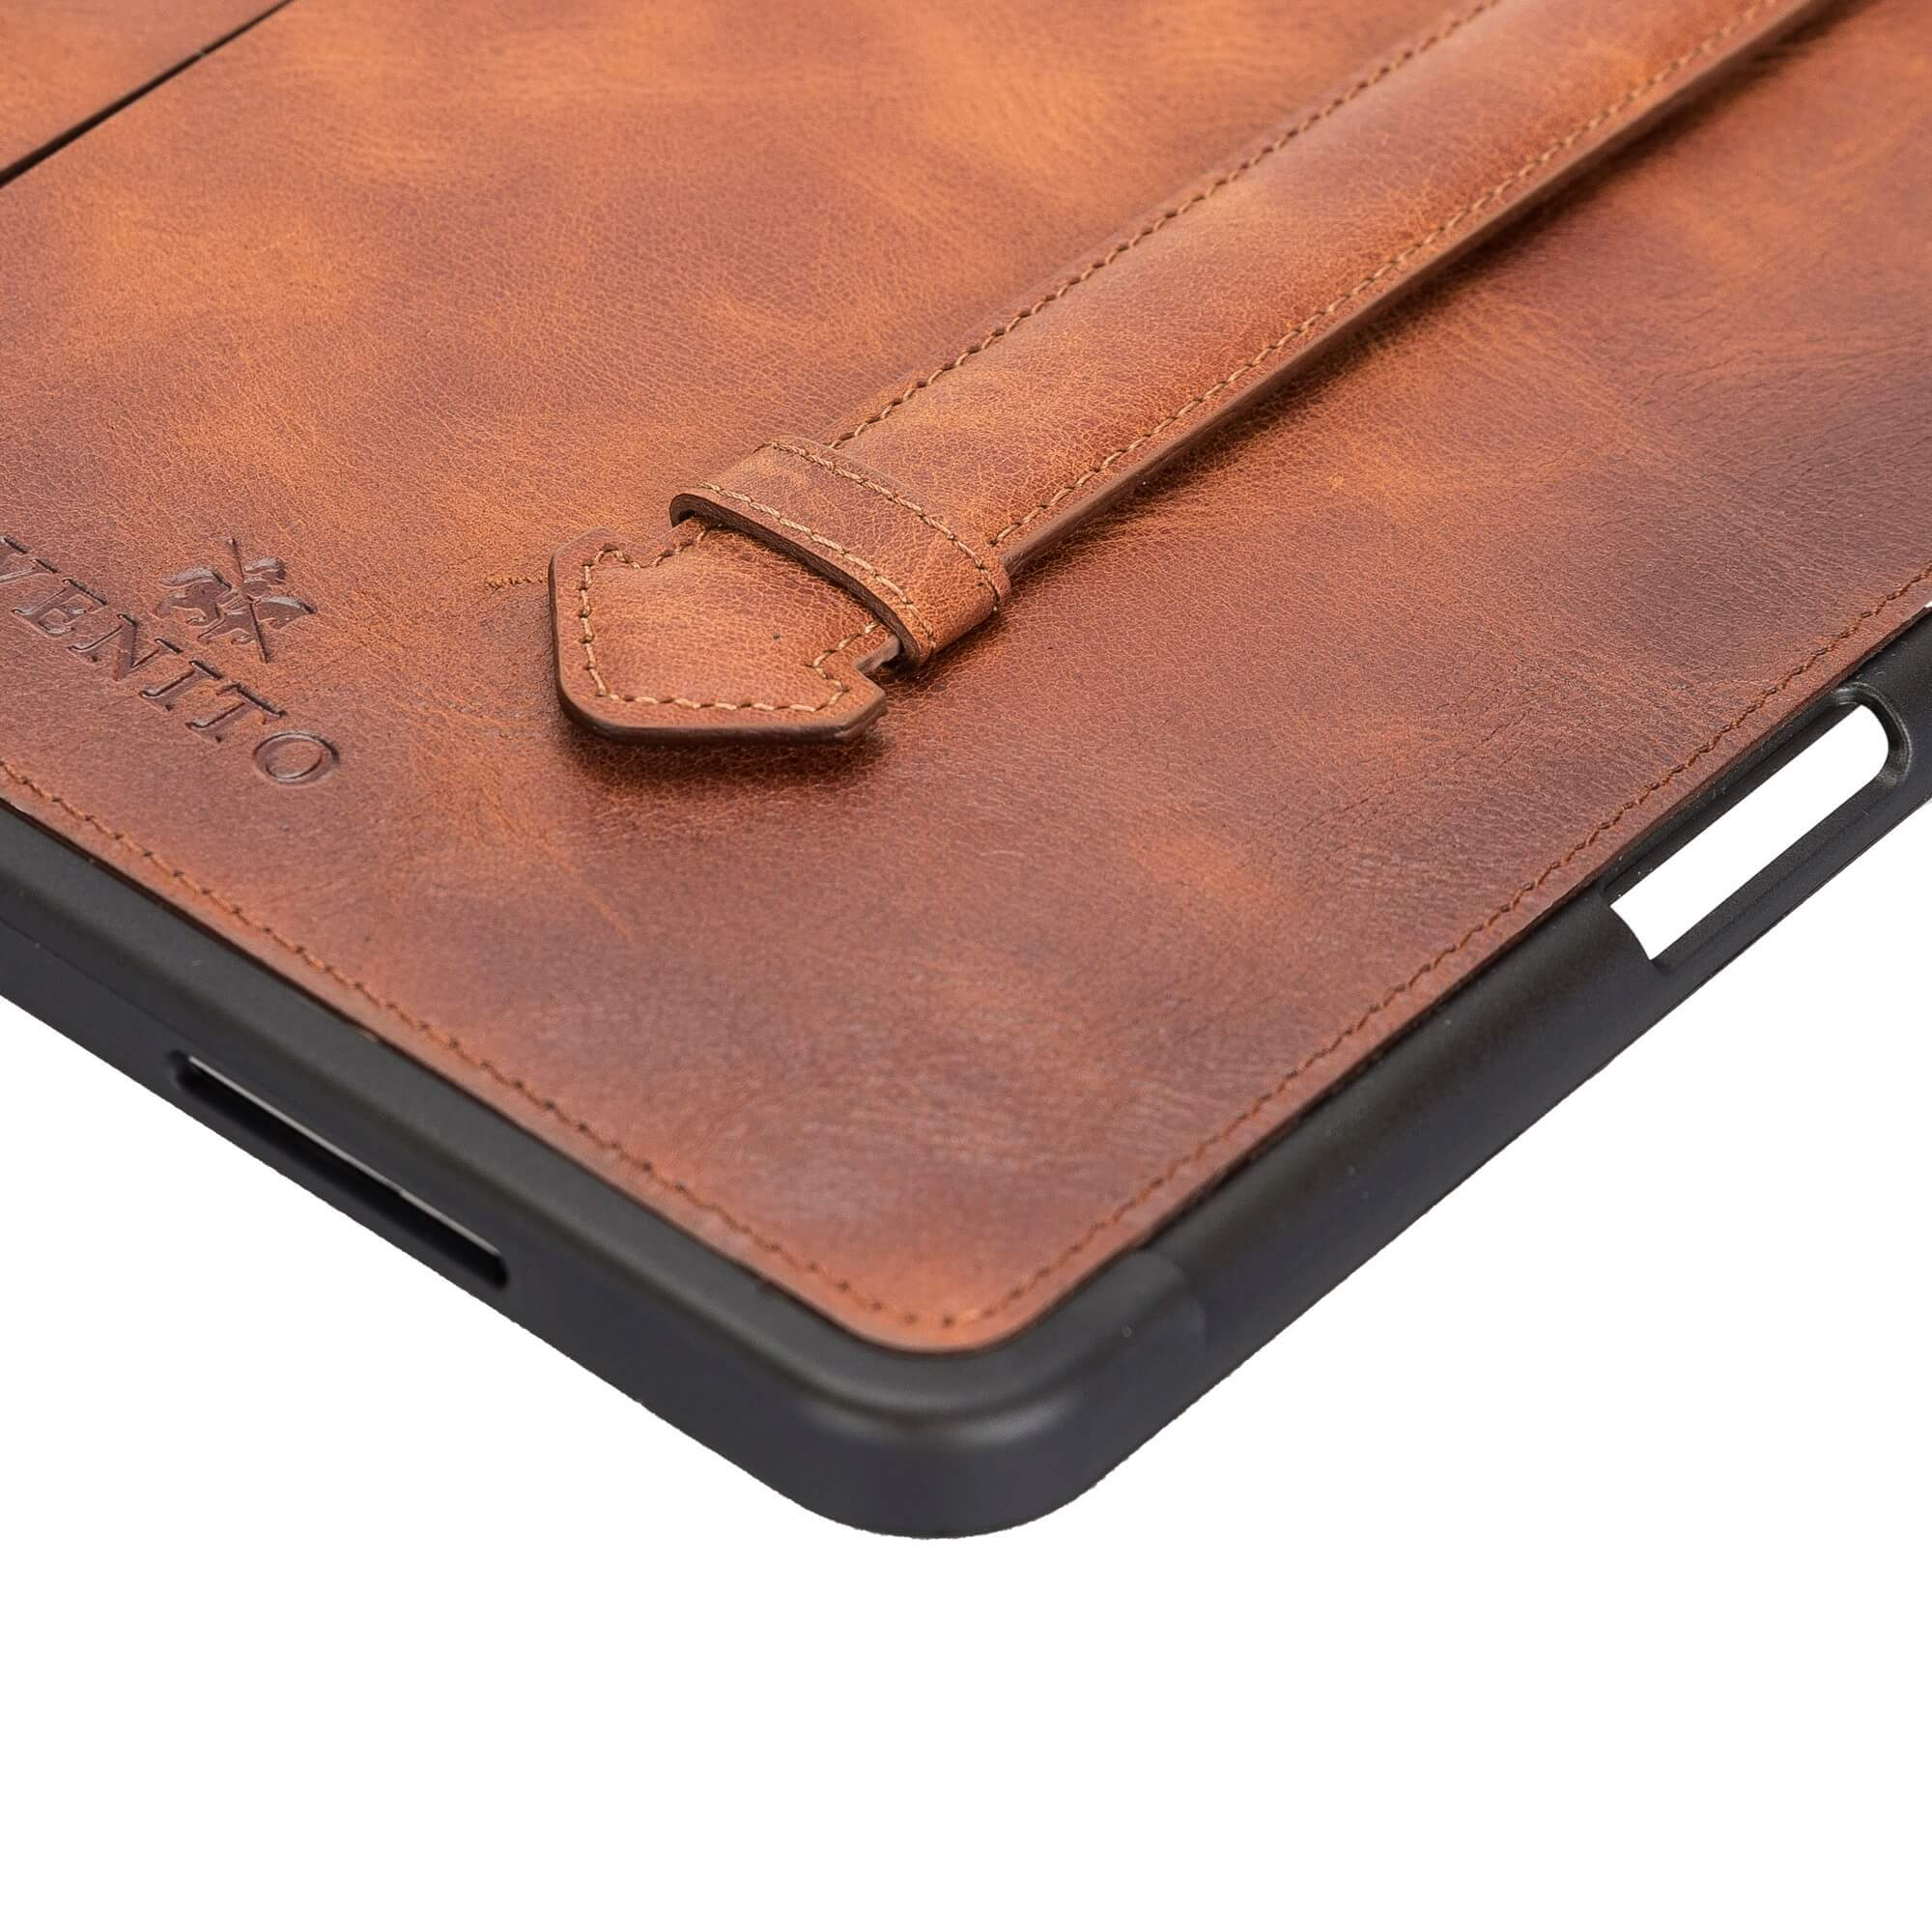 Lecce Leather Wallet Case for iPad Air 4 2020